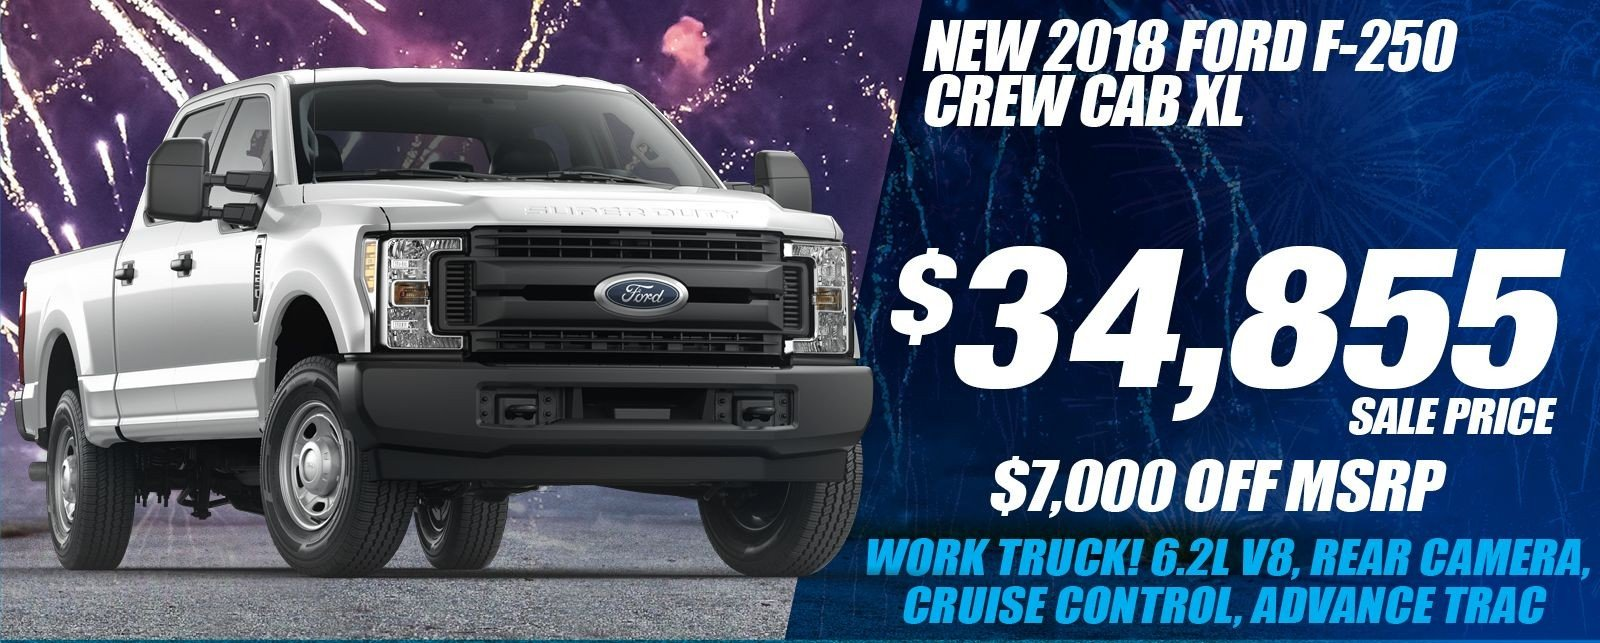 Special offer on 2018 Ford Super Duty F-250 SRW NEW 2018 FORD SUPER DUTY F-250 XL DEAL